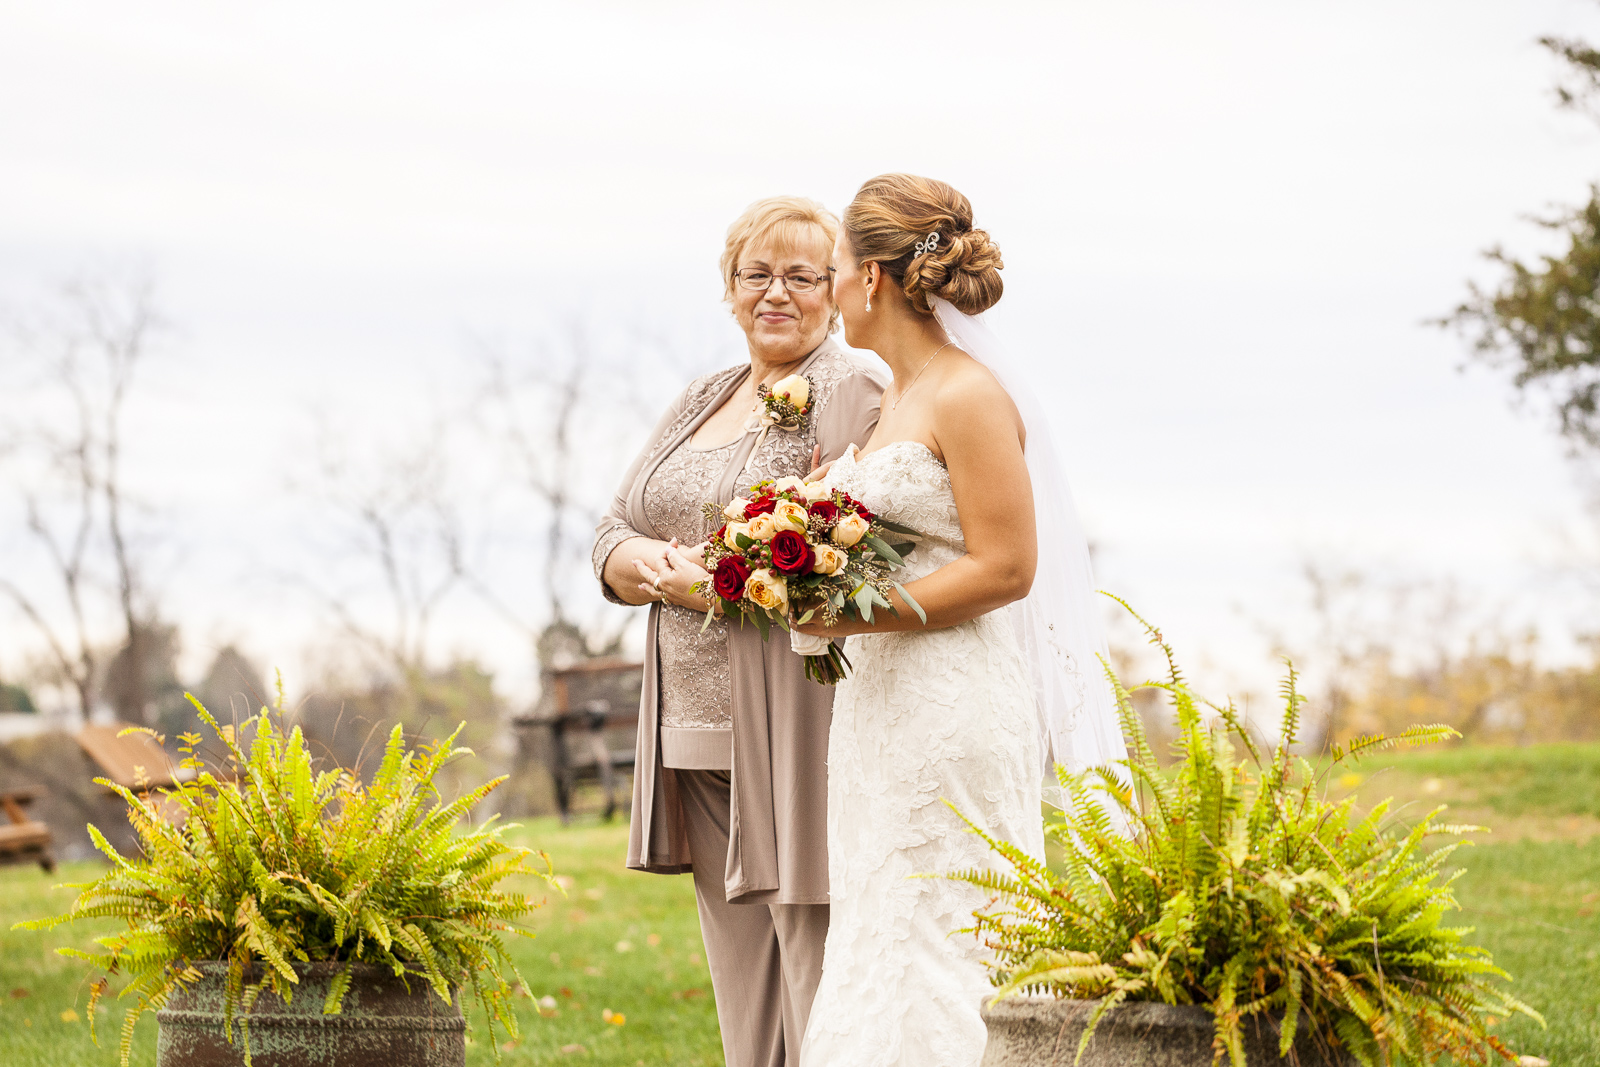 The wedding of Krista Boyd and Matt Wolfe at the Chestnut Hill Bed and Breakfast in Orange, VA, November 7, 2015.©Lindsay King Photography/2015